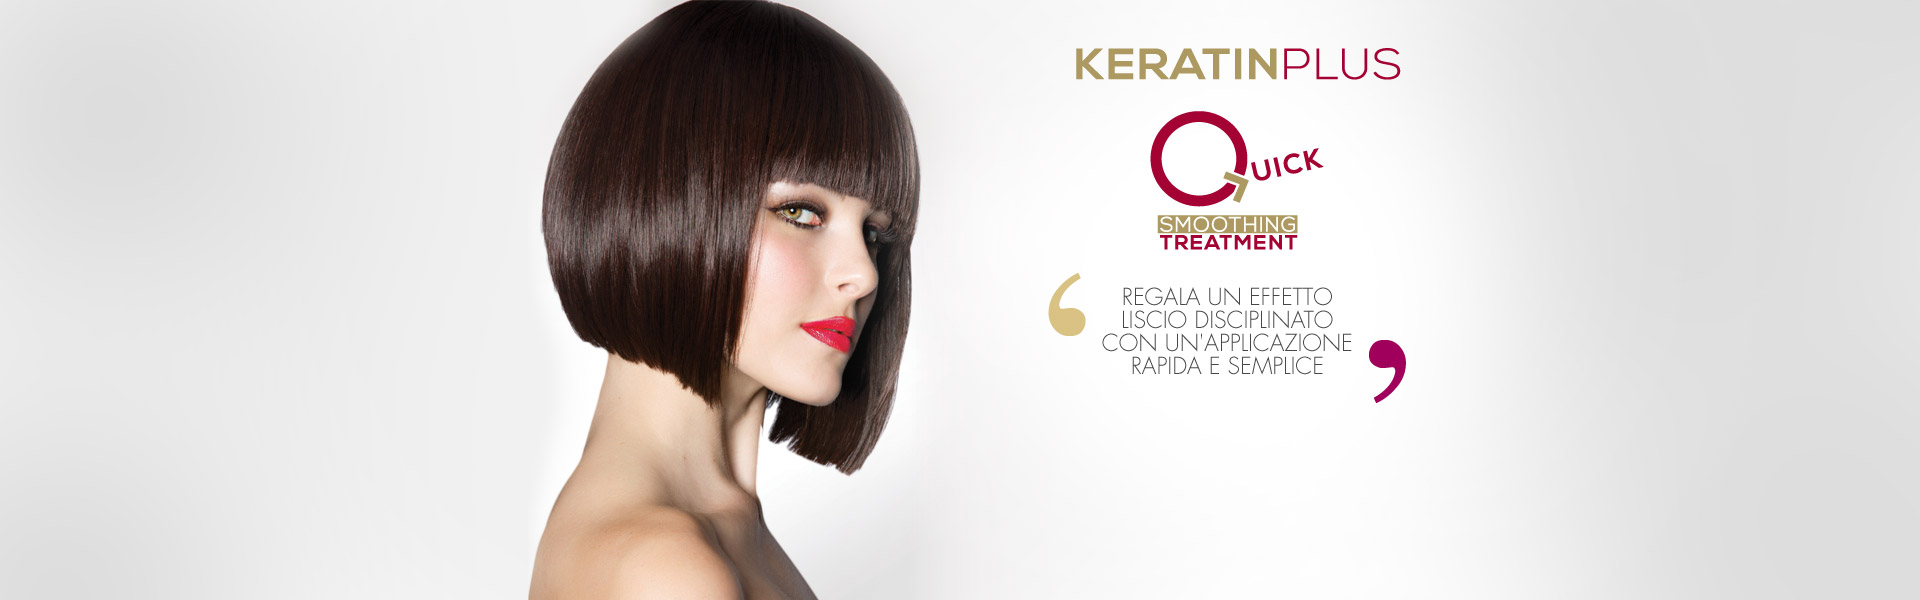 keratinplusquick_it